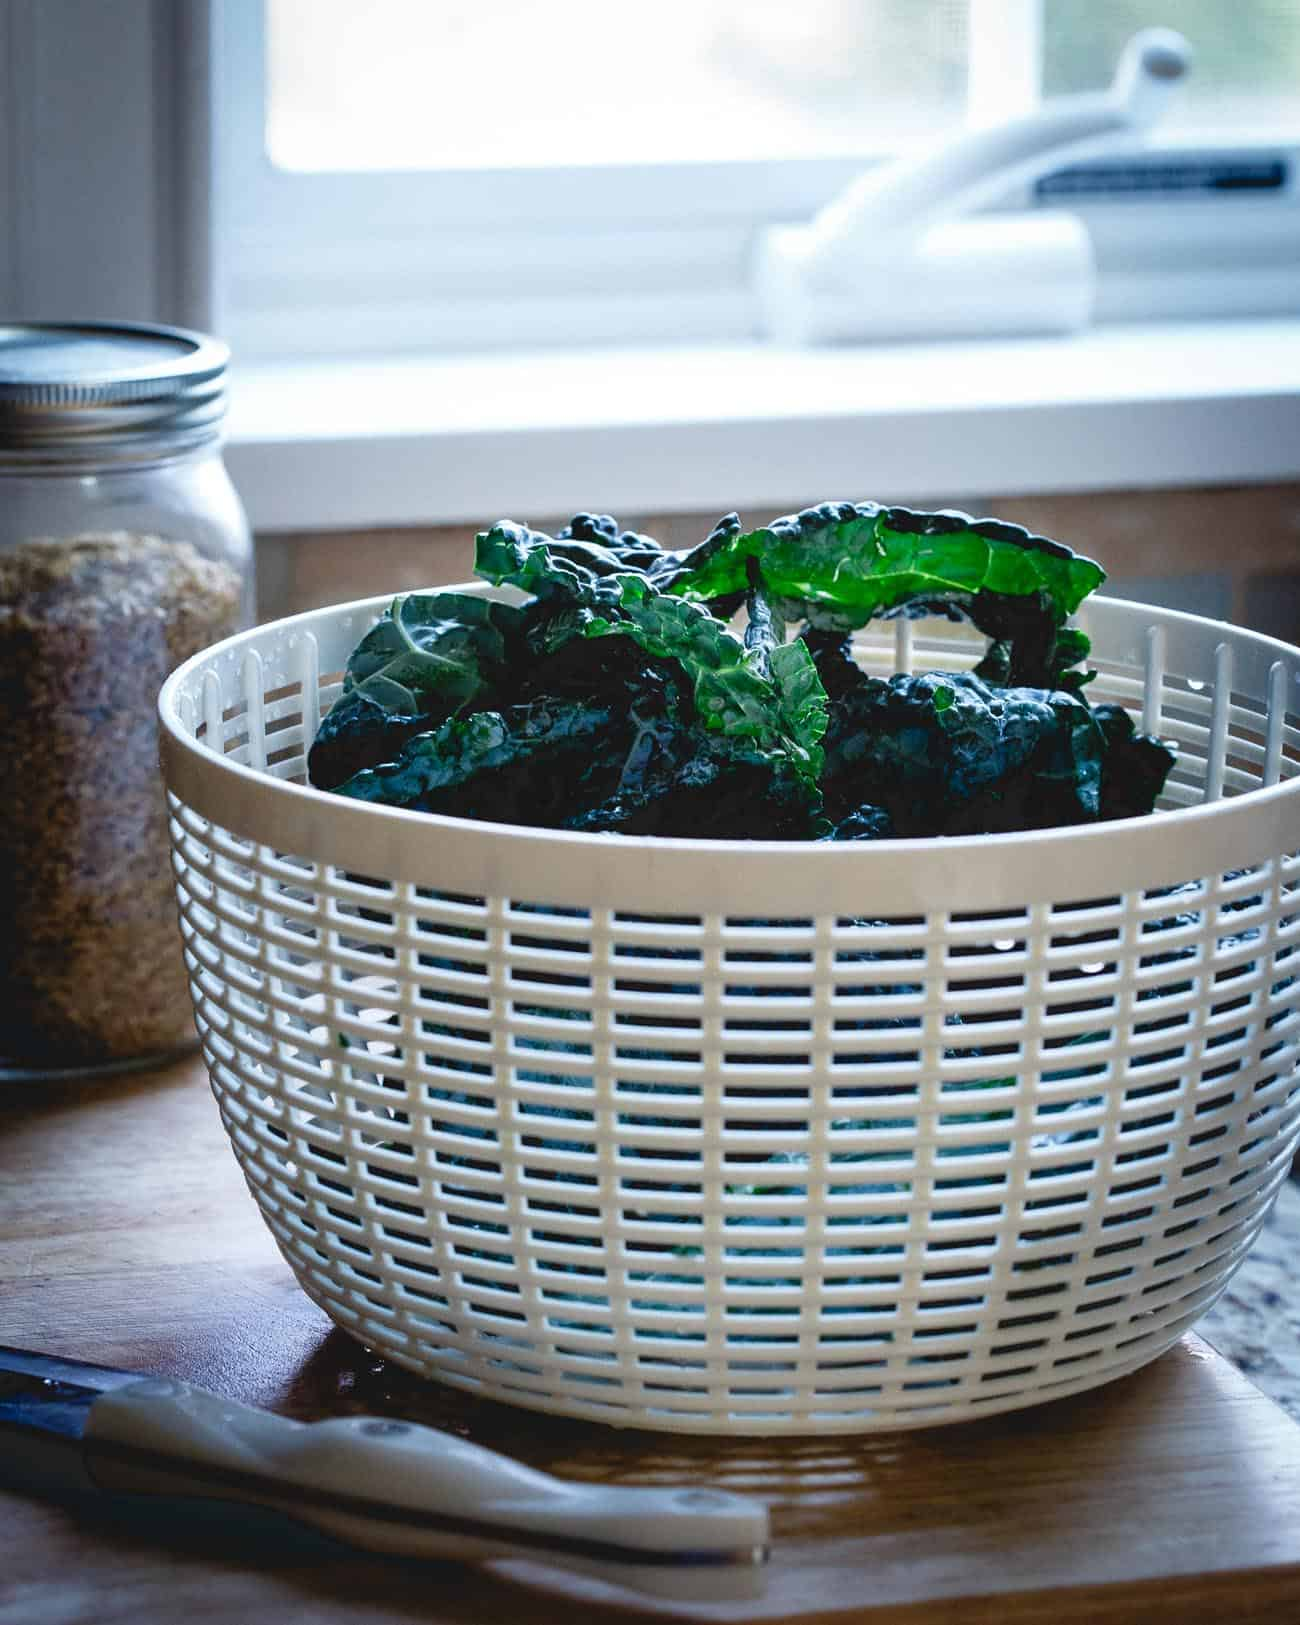 Tuscan kale and freekah combine for a hearty take on twice baked acorn squash.